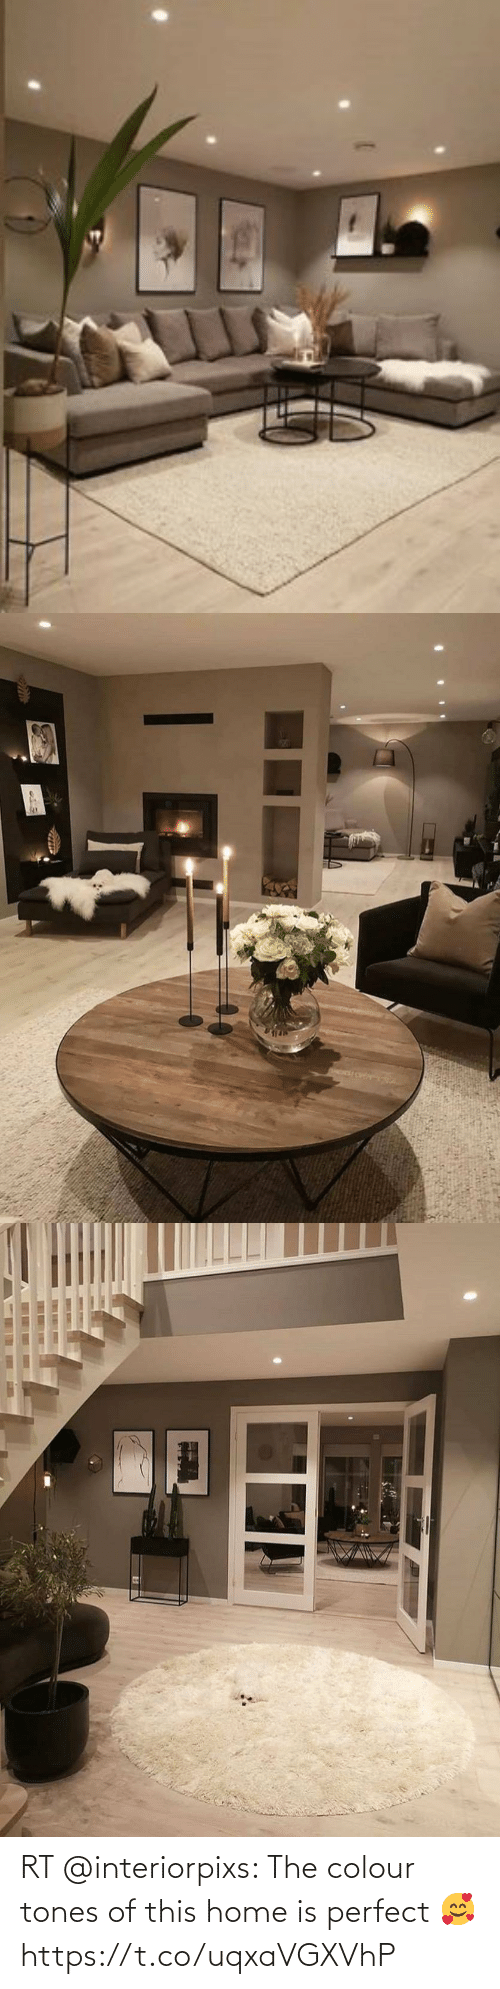 Colour: RT @interiorpixs: The colour tones of this home is perfect 🥰 https://t.co/uqxaVGXVhP